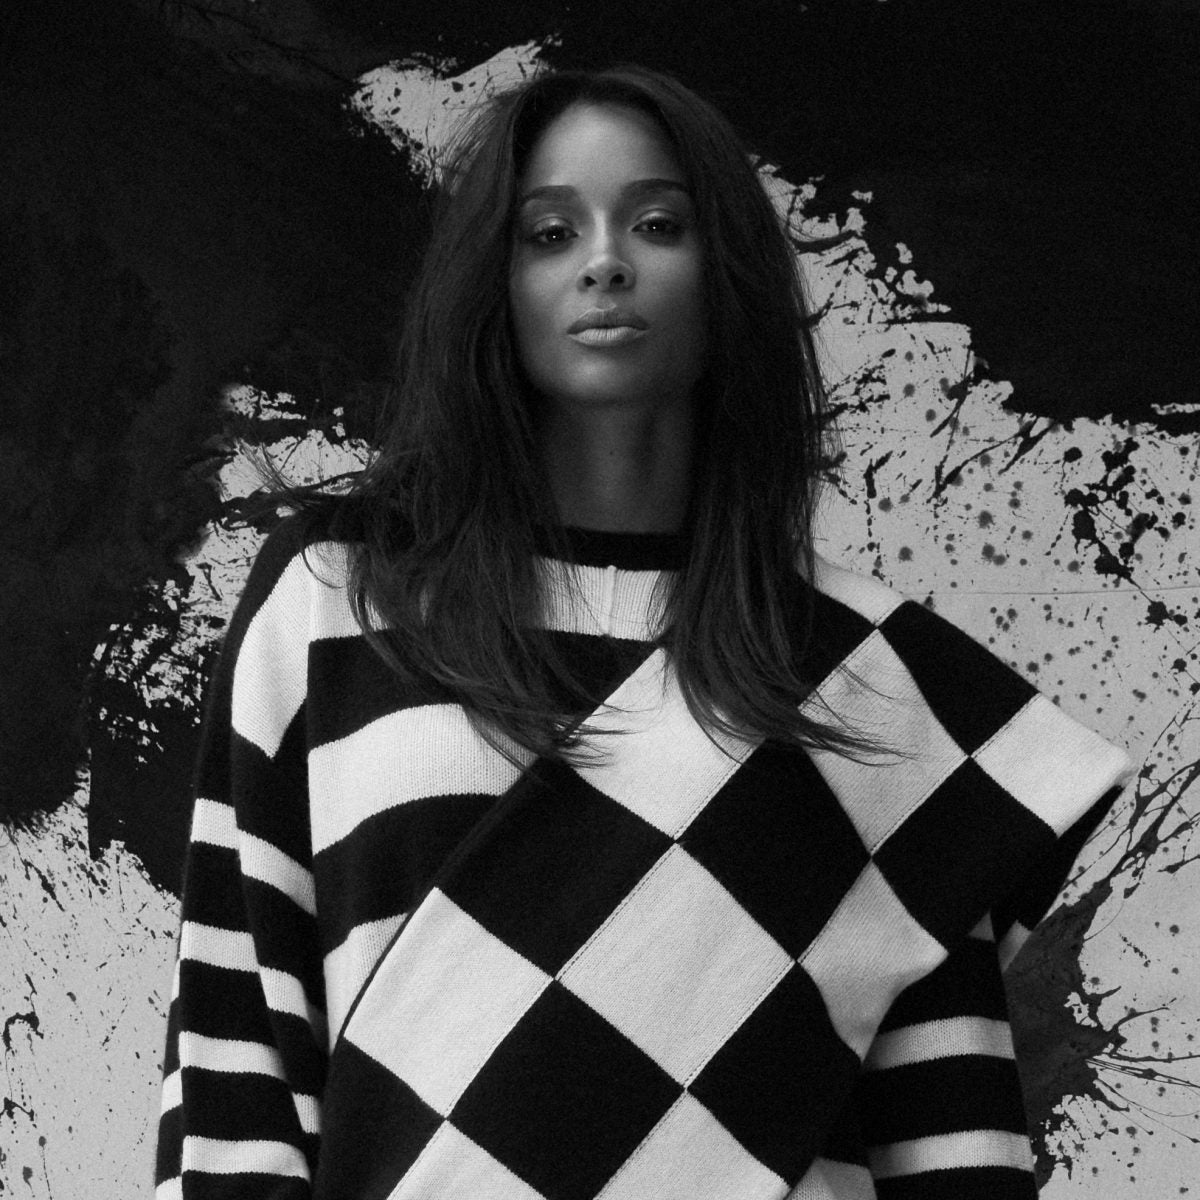 Ciara Launches A New Fashion Brand Under House Of LR&C